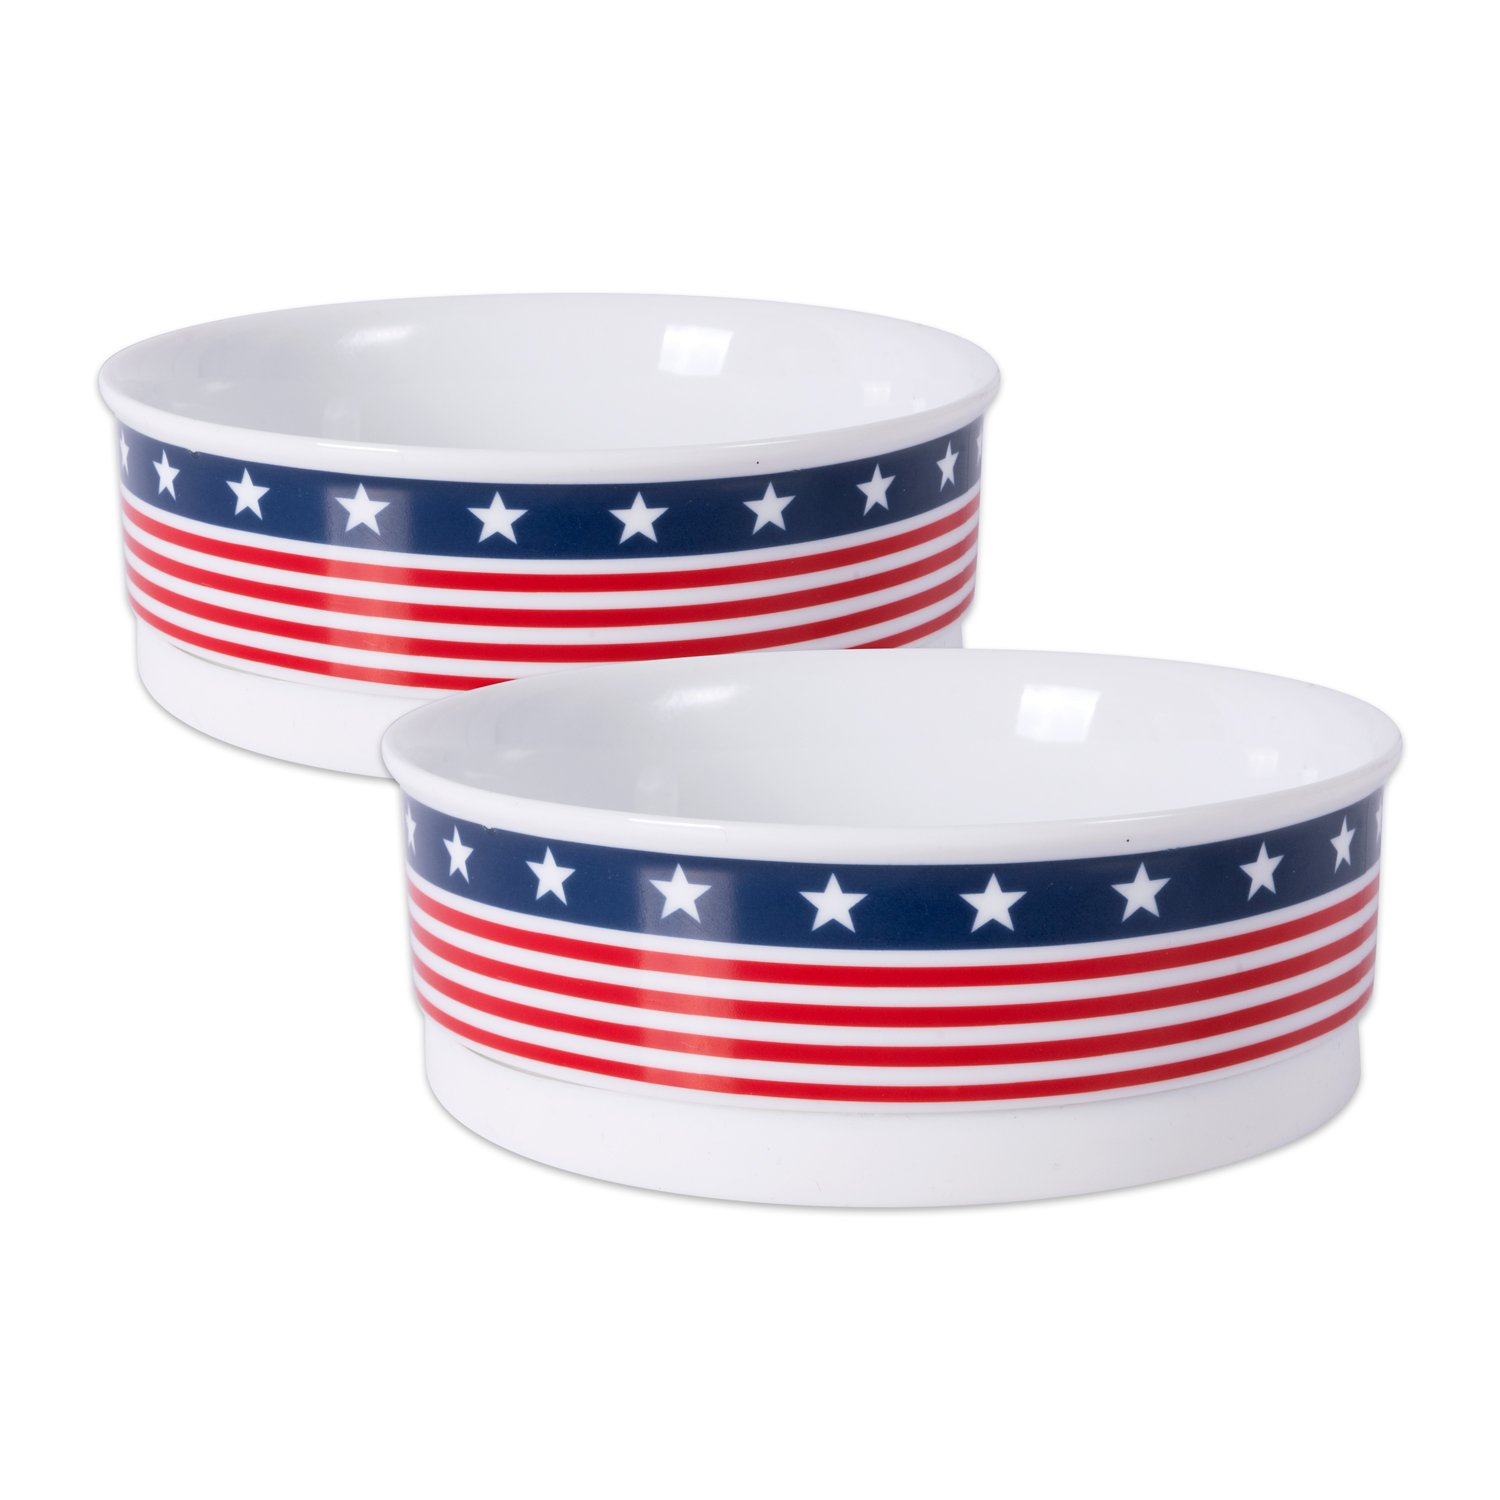 DII Bone Dry Patriotic Ceramic Pet Bowl for Food & Water with Non-Skid Silicone Rim for Dogs and Cats (Medium 6  Dia x 2 H) Stars and Stripes Set of 2